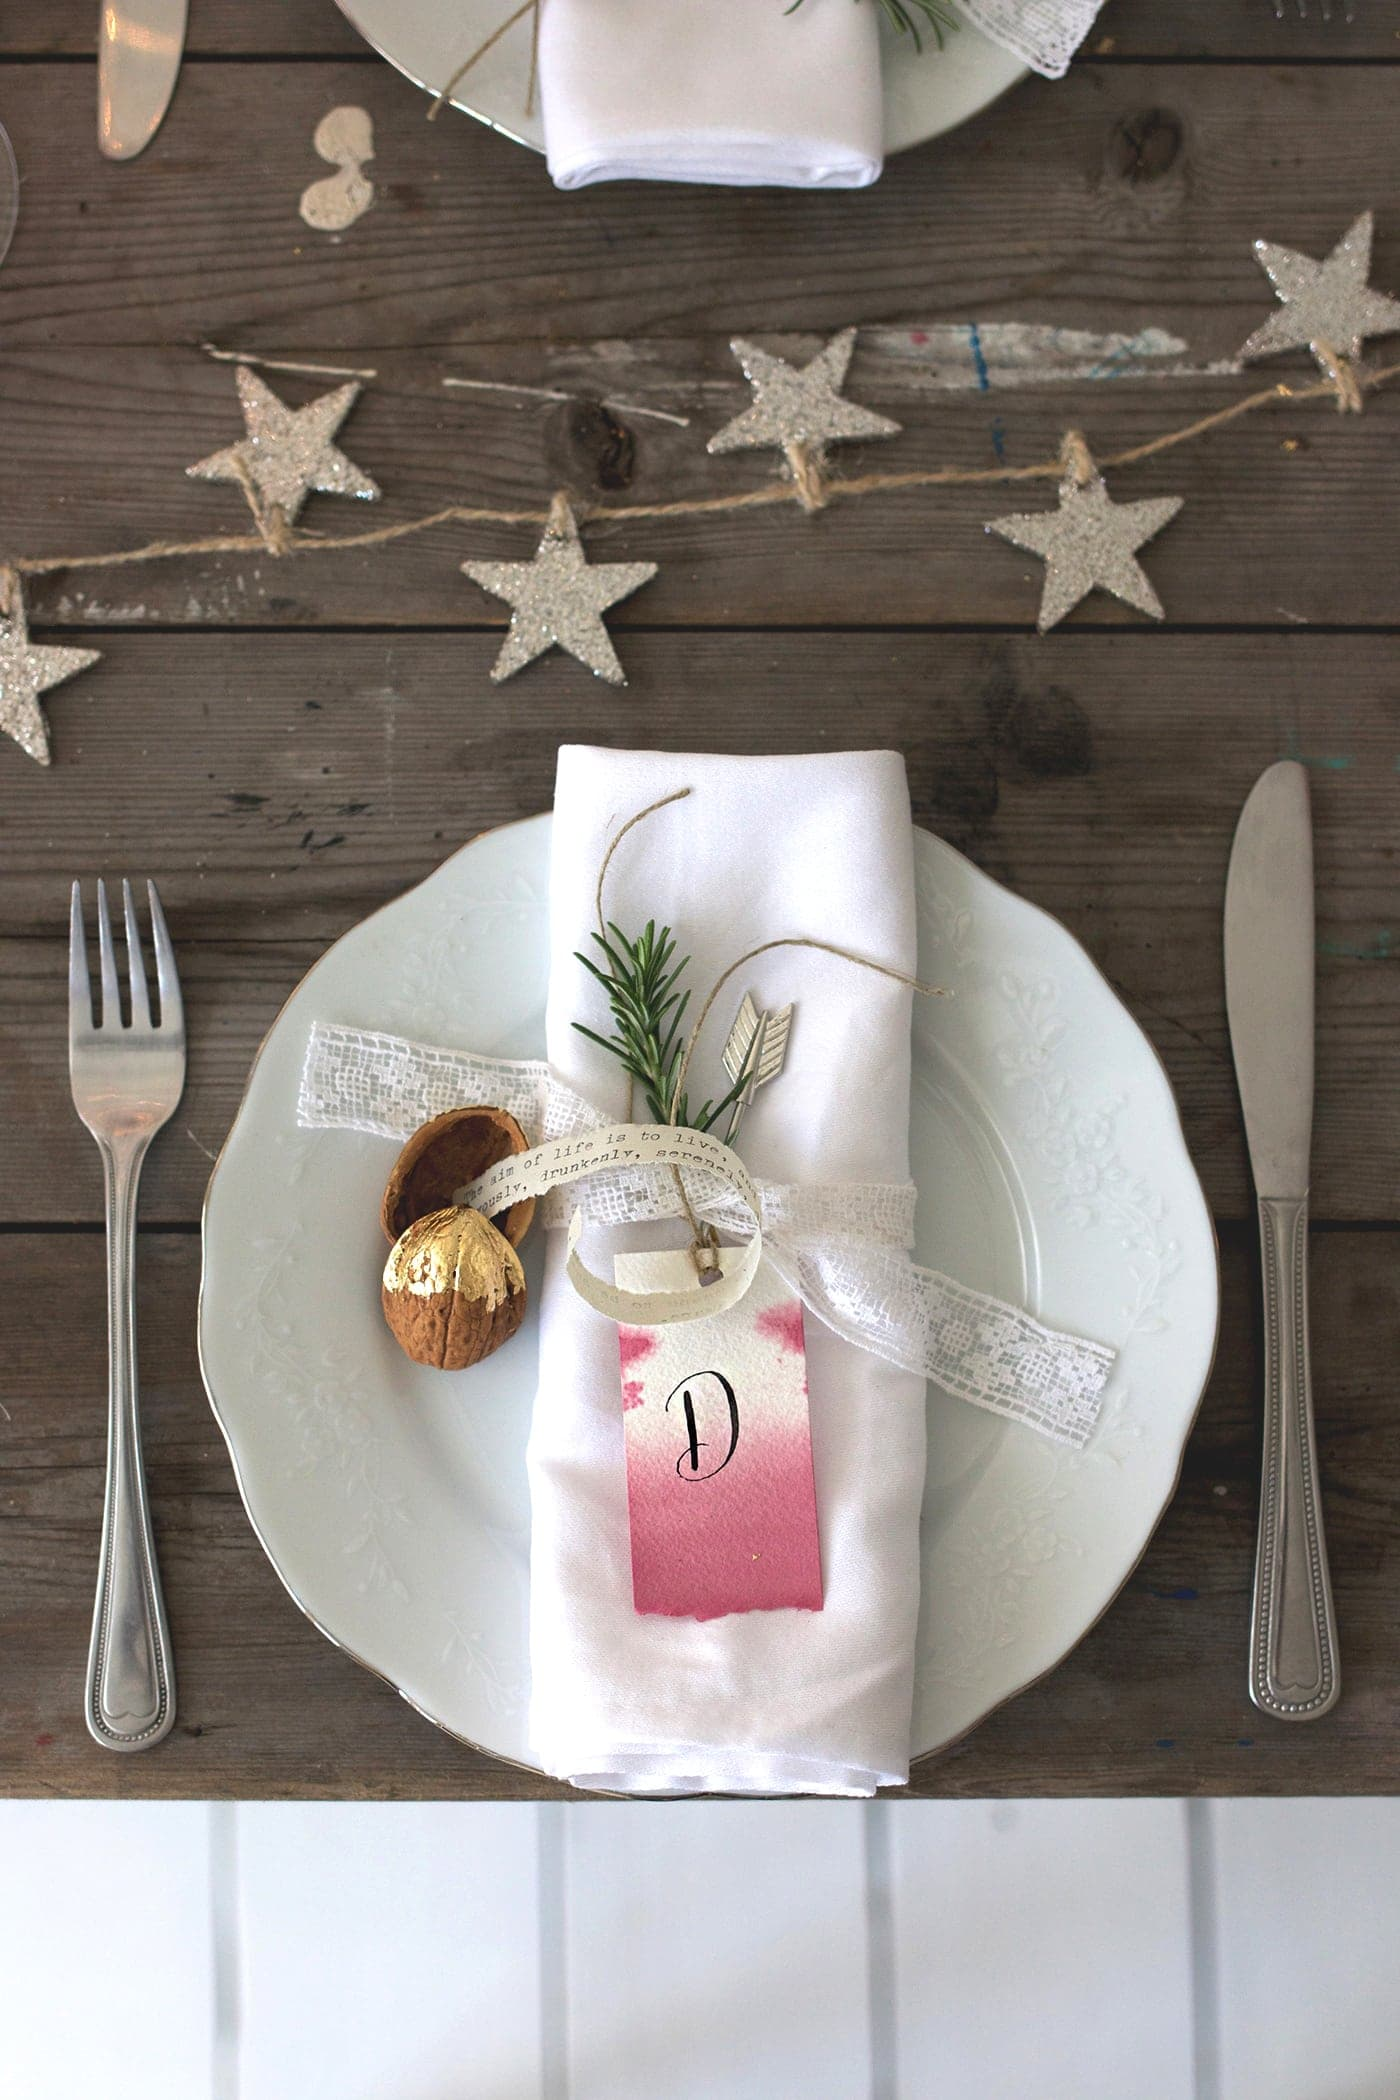 12 styled days of Christmas with West Elm | festive table setting | lobster and swan